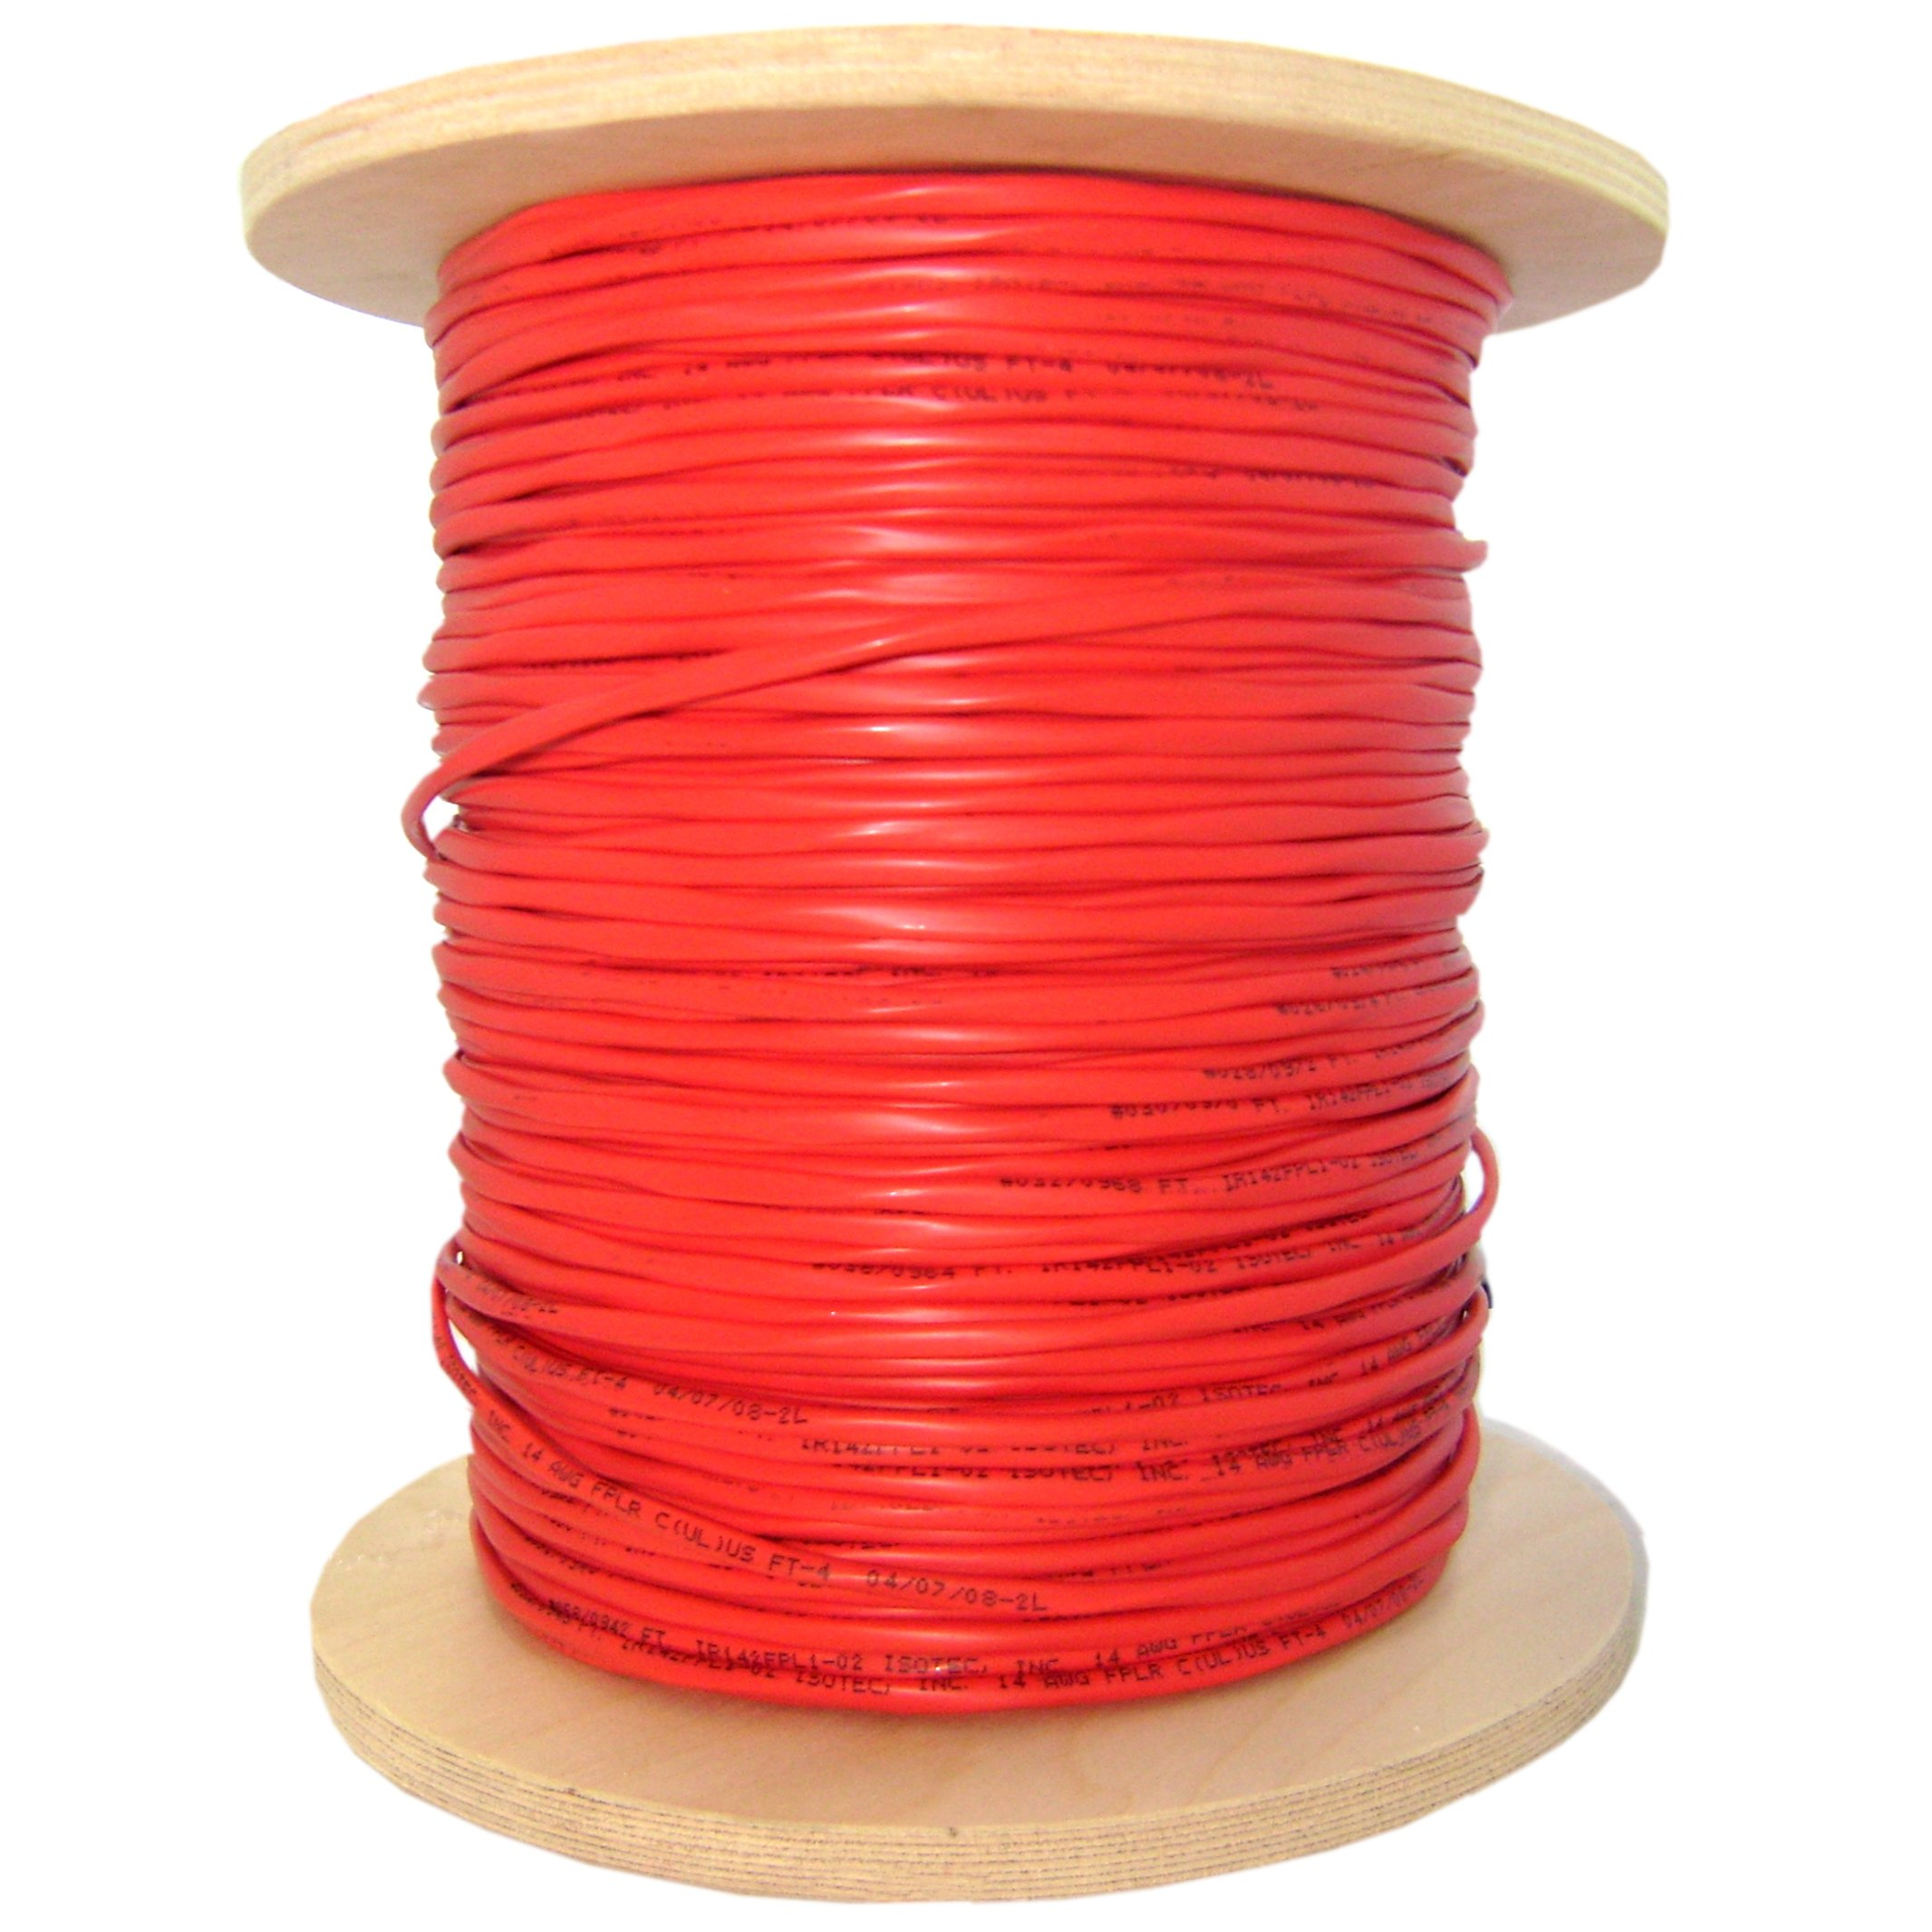 Fire Alarm / Security Cable, Red, 16/4 (16 AWG 4 Conductor), Solid, FPLR, Spool, 1000 foot - Shielded Signal Alarm Sound Wire Coaxial Audio Video Copper Power Cord